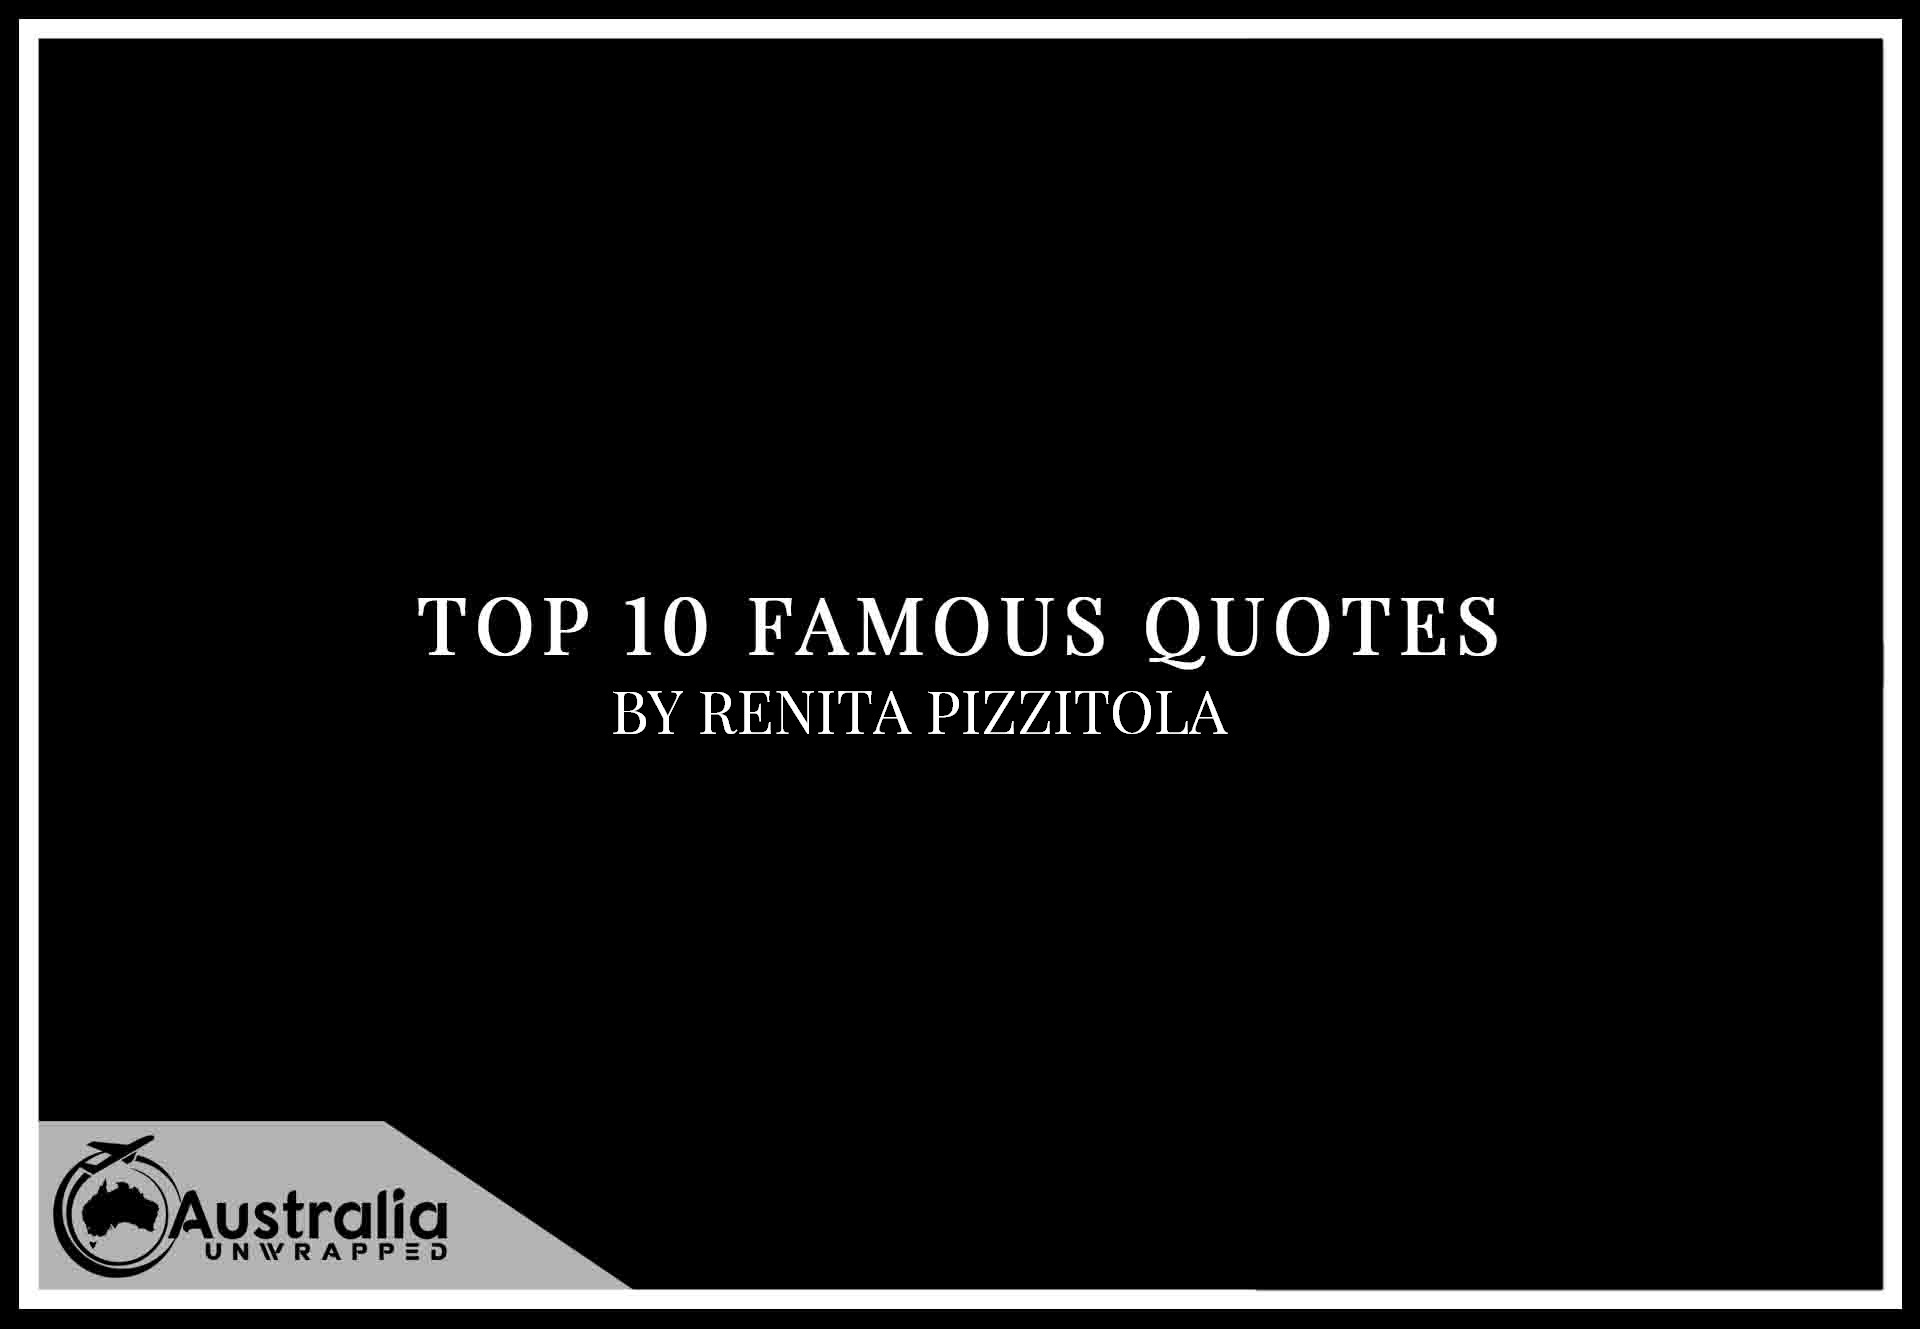 Renita Pizzitola's Top 10 Popular and Famous Quotes